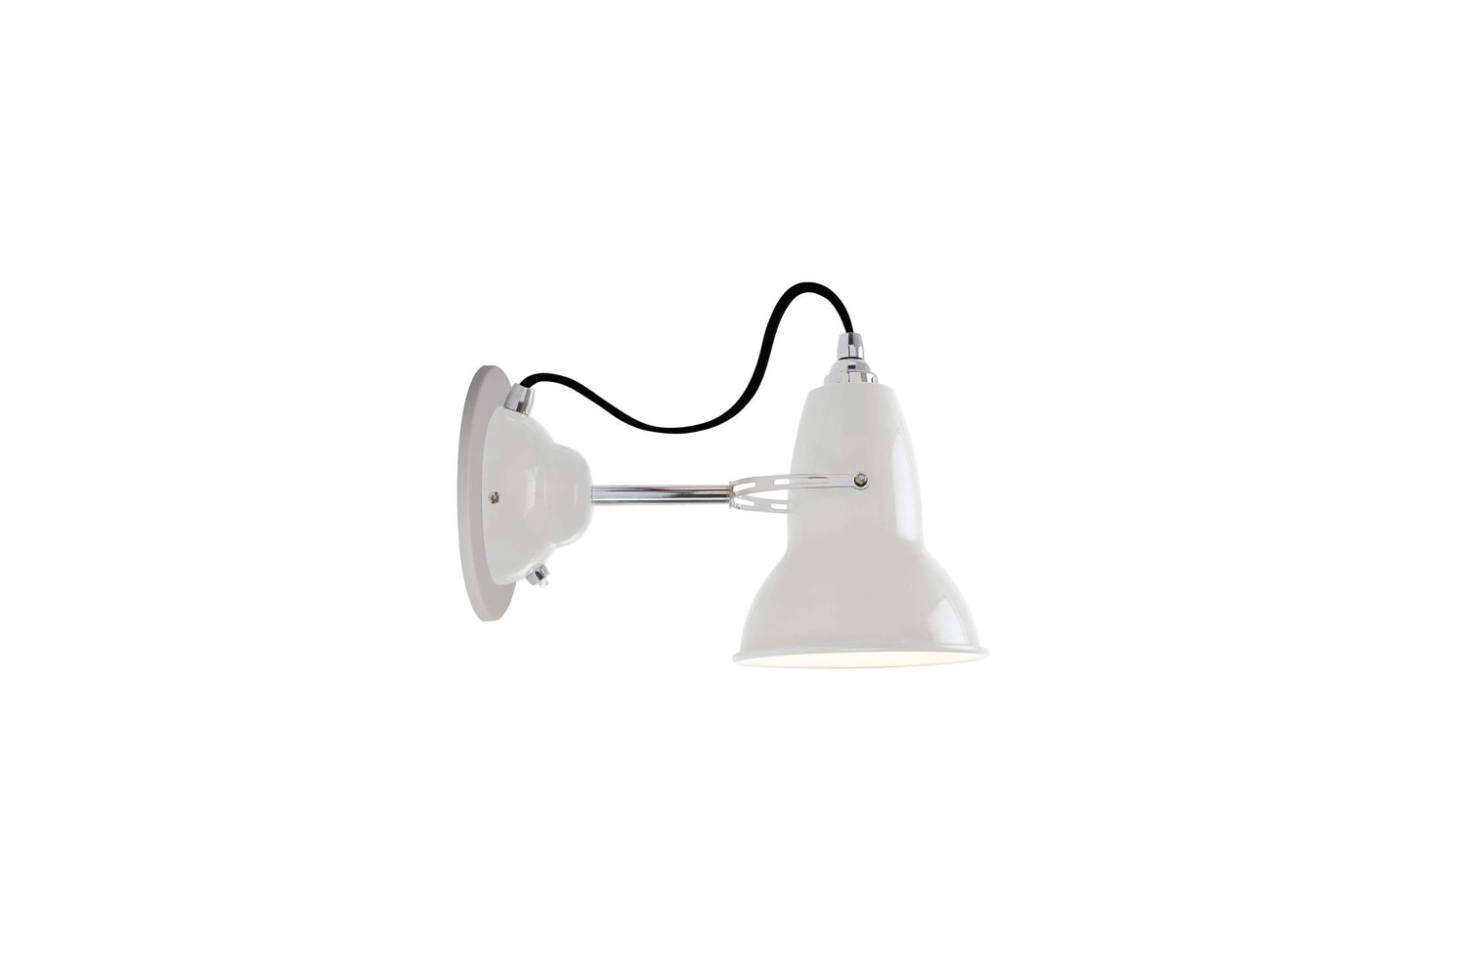 The Anglepoise Original 1227 Wall Light in White with chrome and colored cable; $170 at Horne.